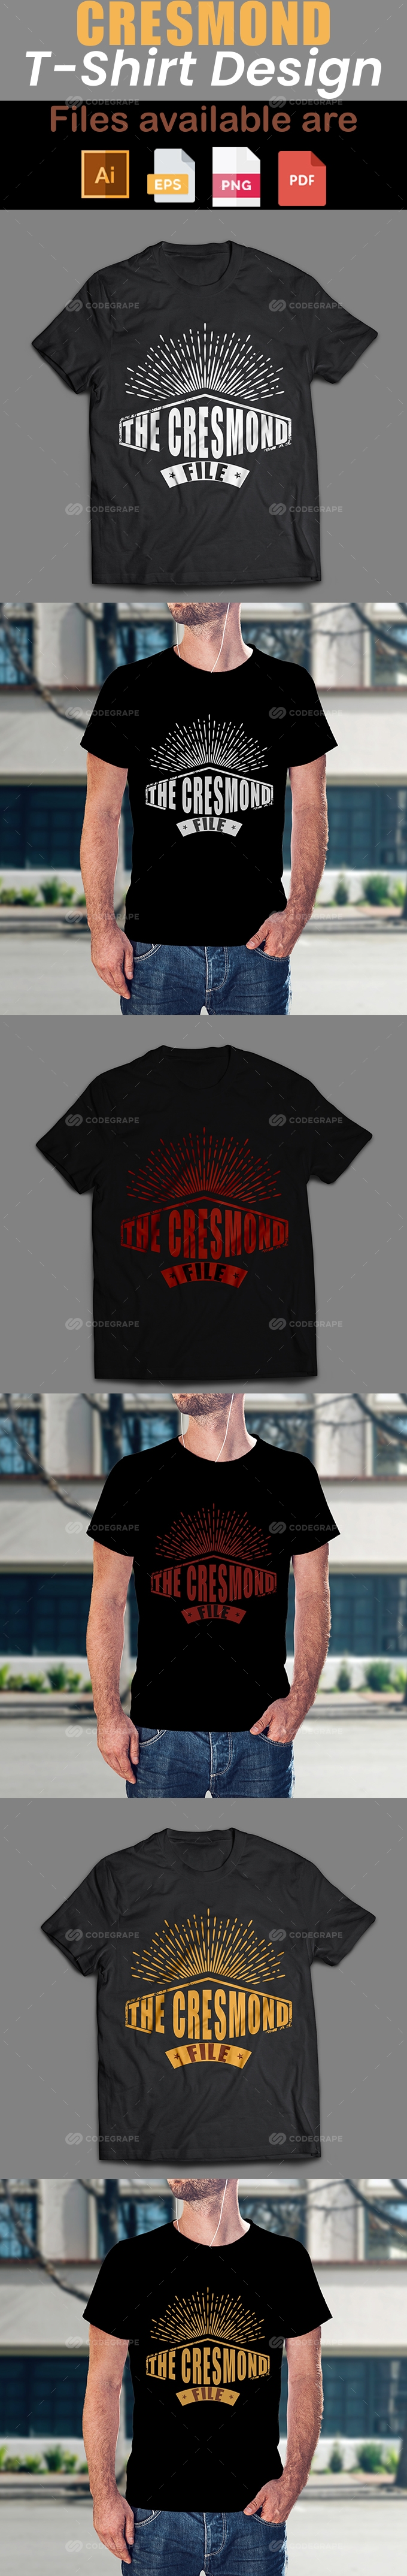 The Cresmond T-Shirt